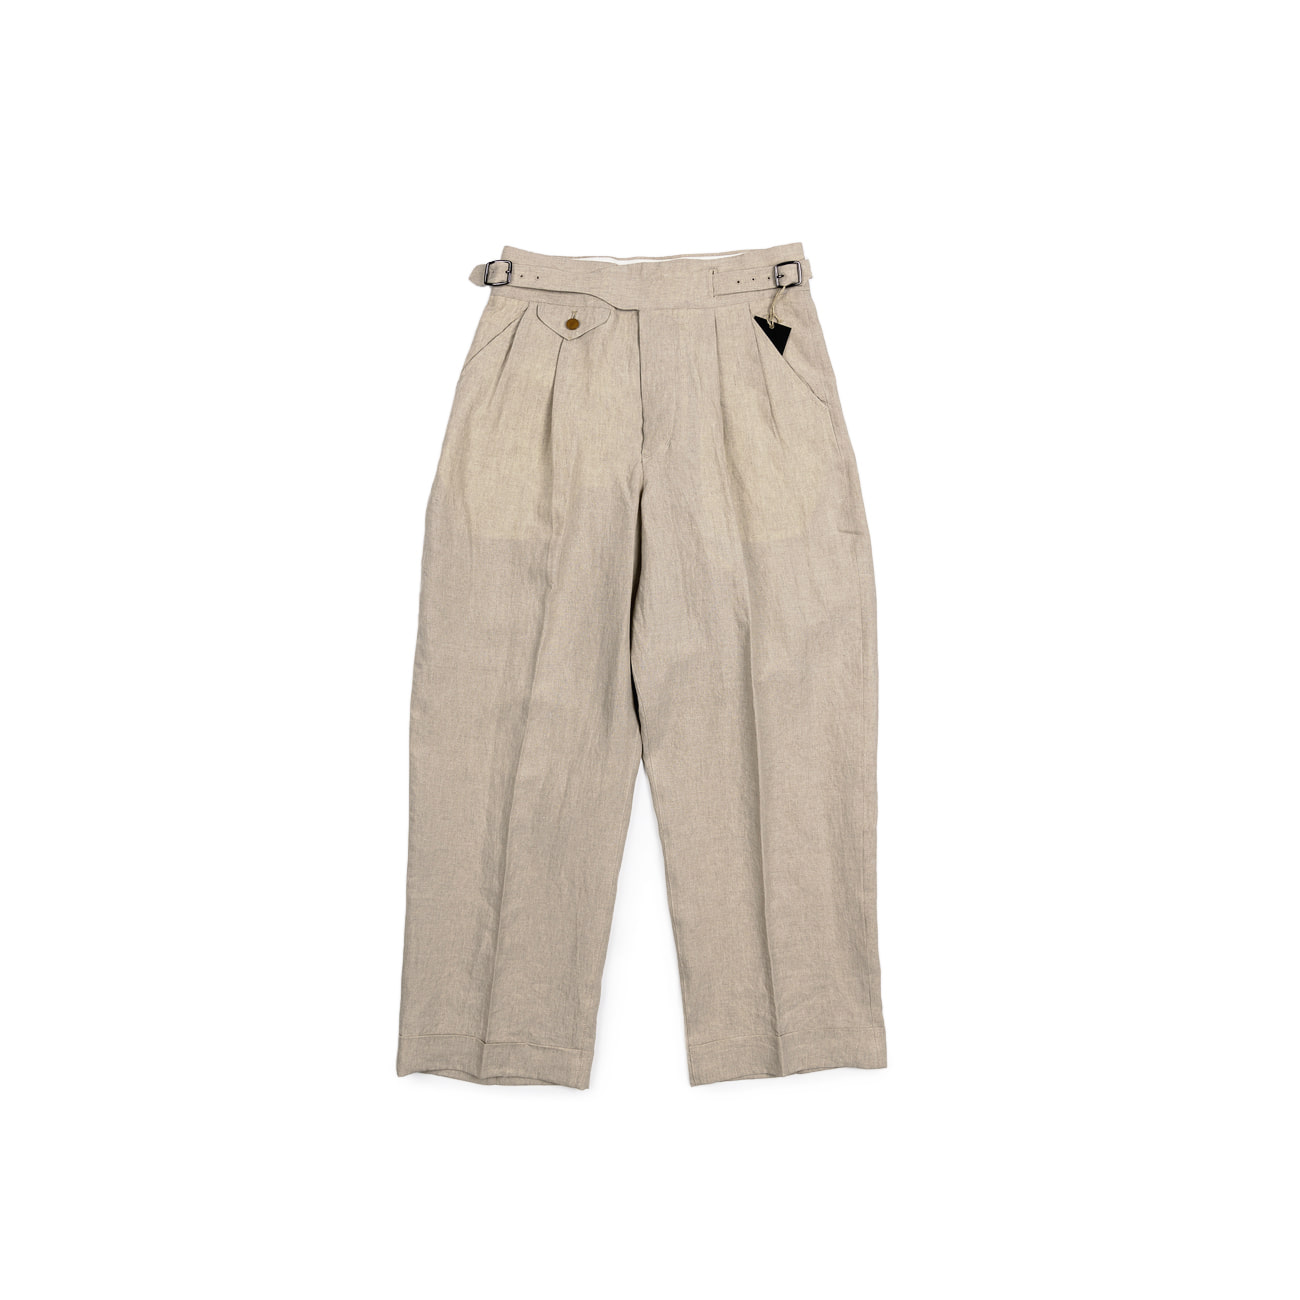 High Density Linen Gurkha Pants